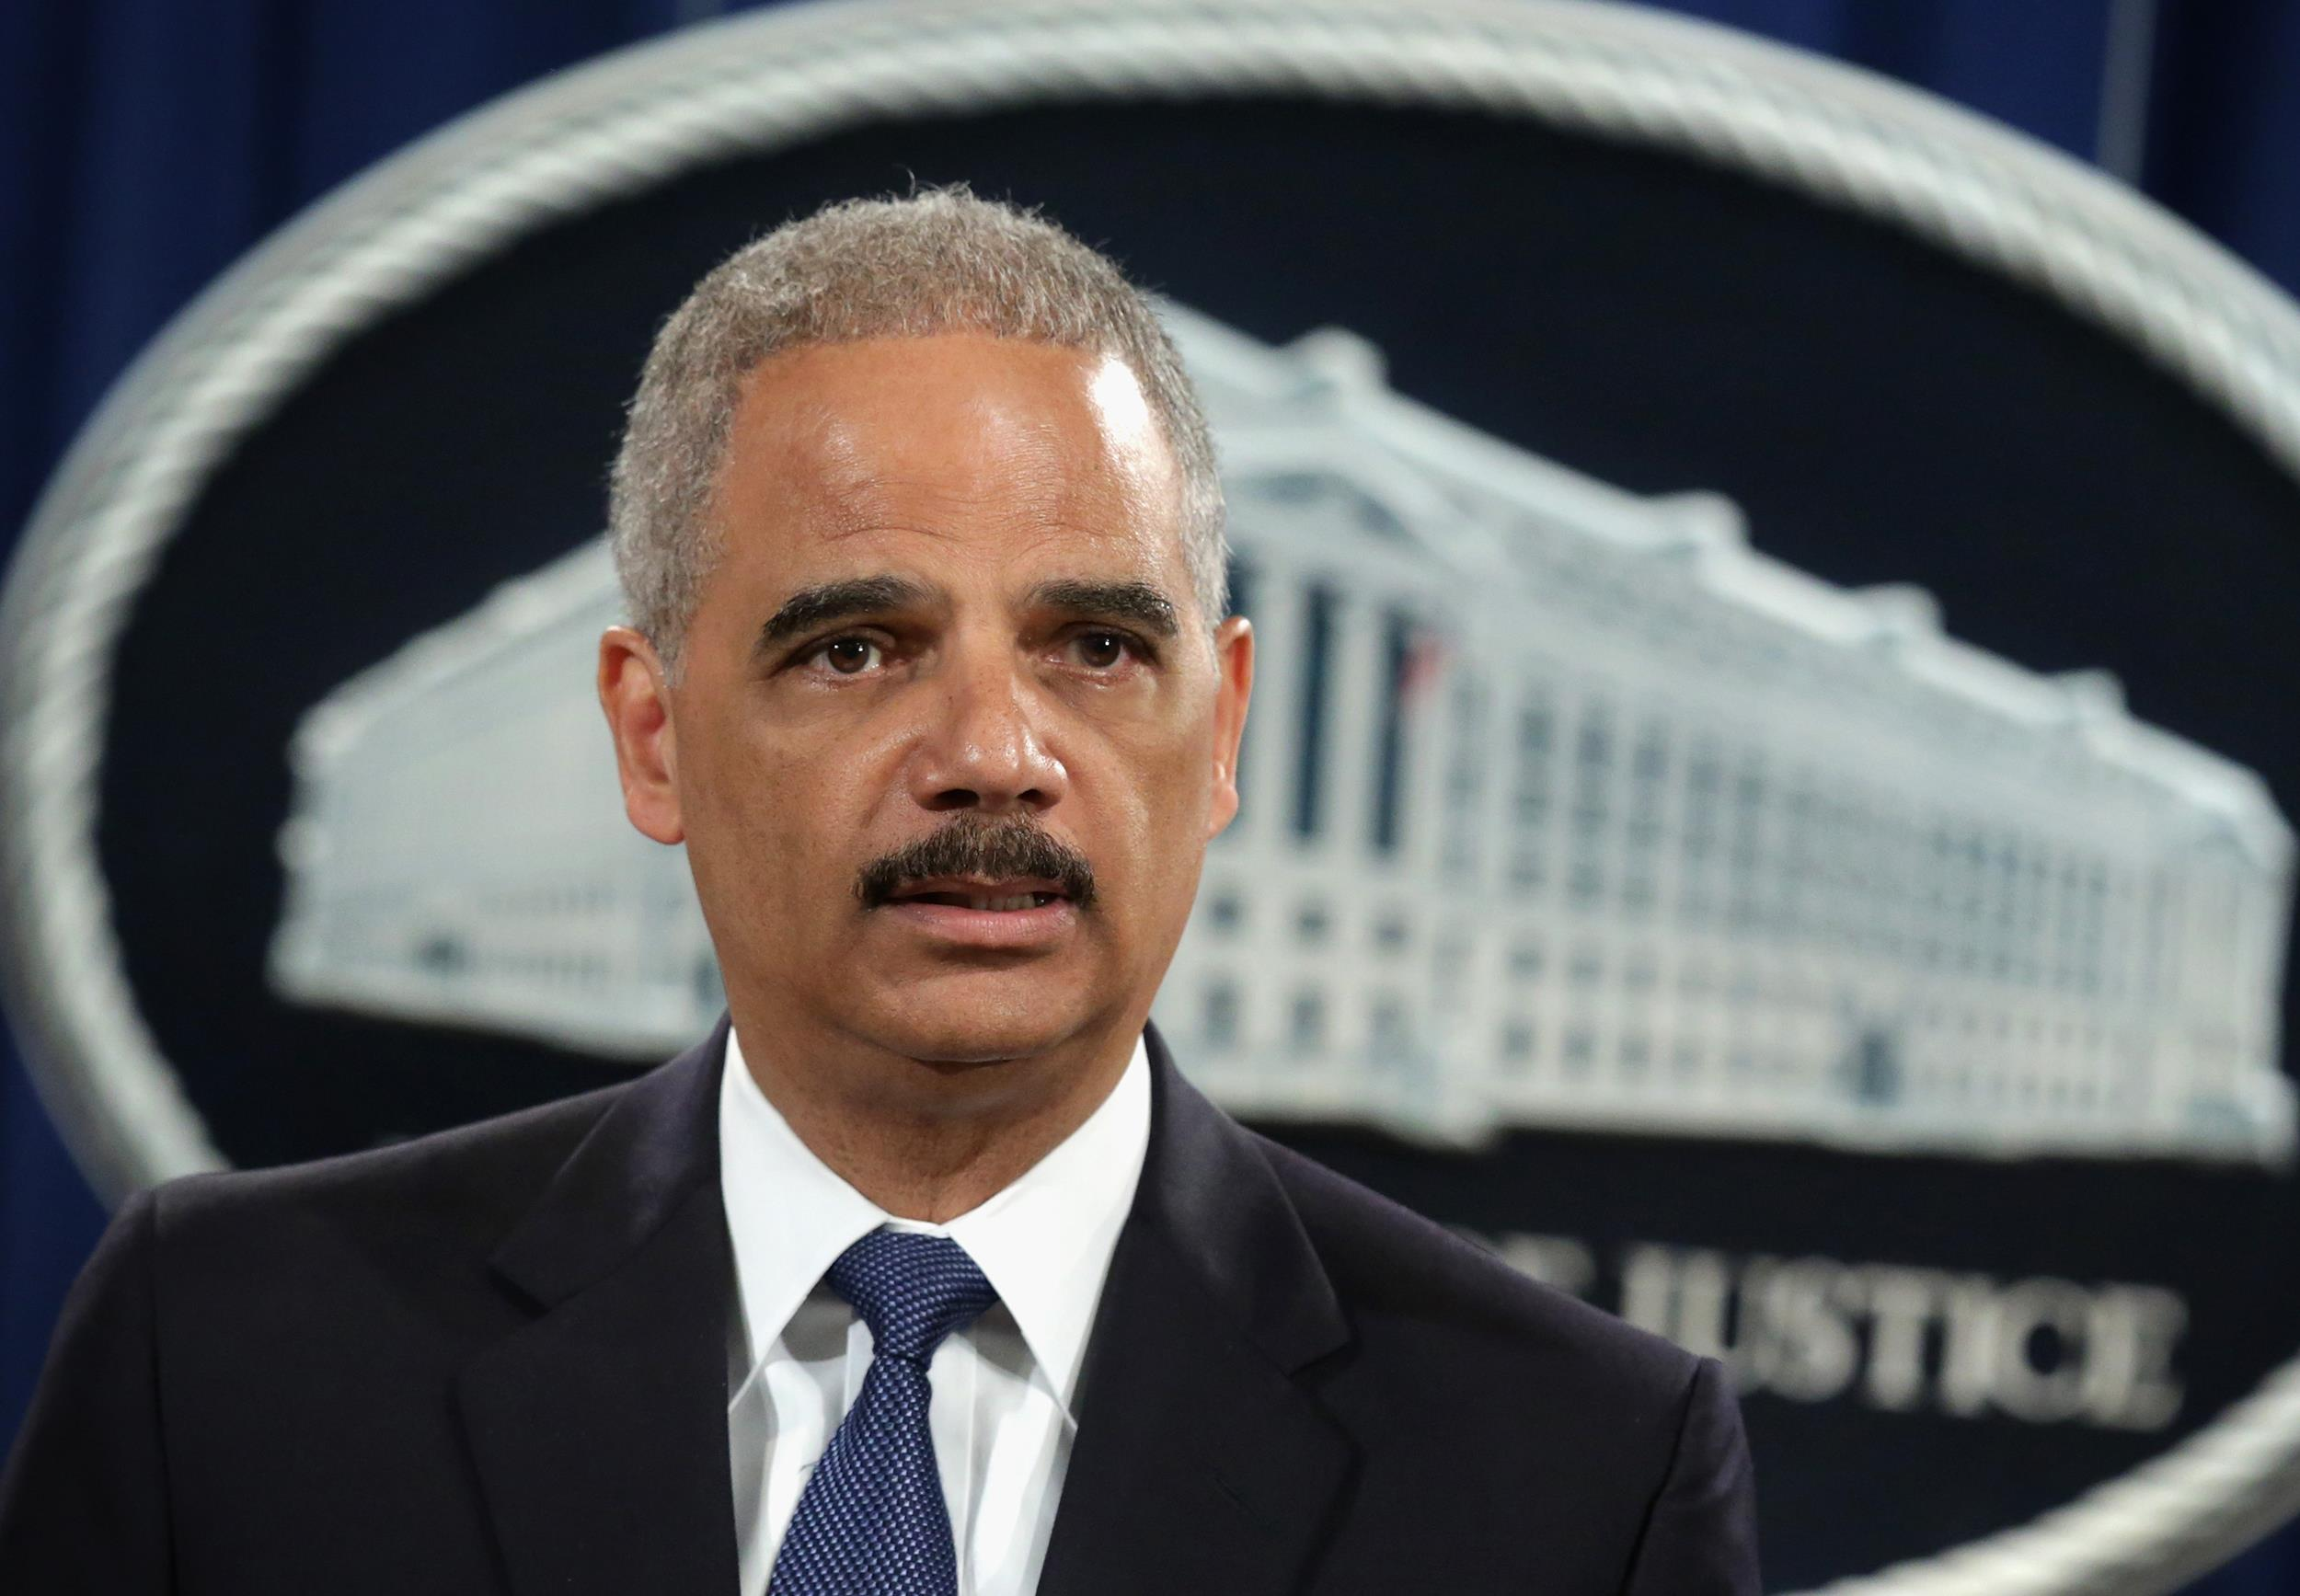 Image: U.S. Attorney General Eric Holder speaks as on May 19 at the Department of Justice in Washington, DC